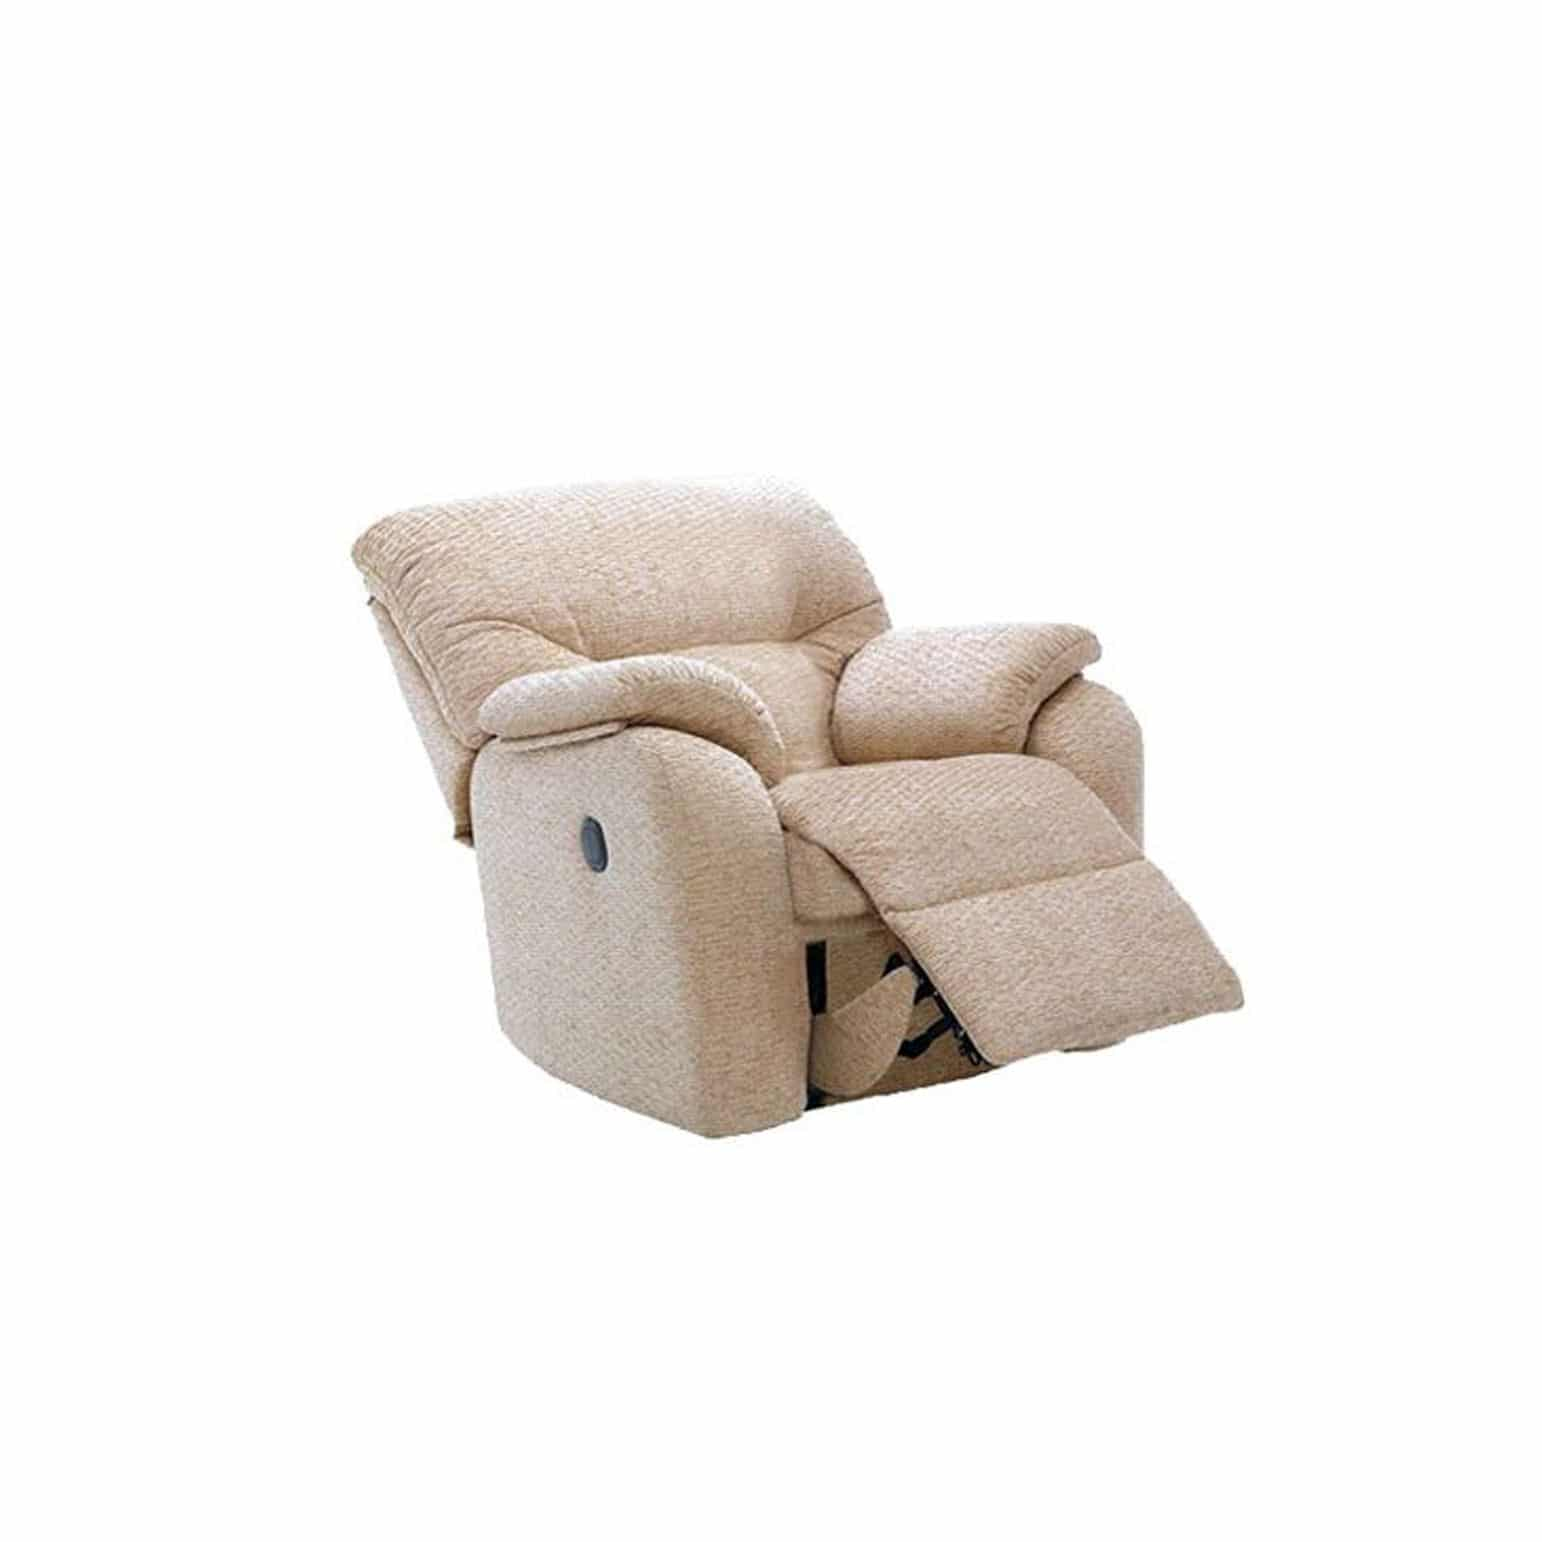 Sensational Mistral Small Manual Recliner Chair Bralicious Painted Fabric Chair Ideas Braliciousco